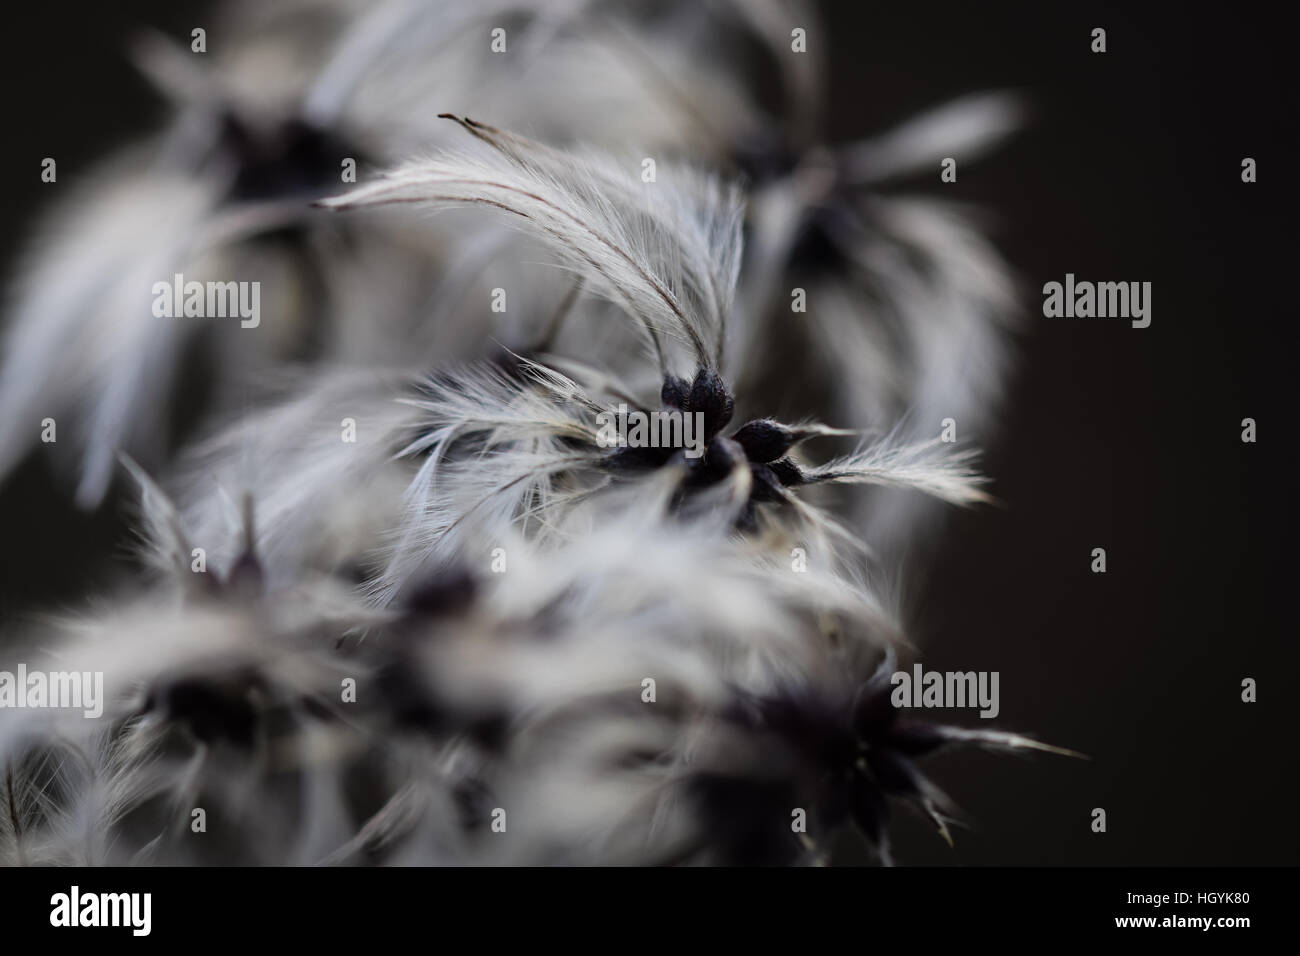 Close up of Clematis vitalba also known as Old Man's Beard in winter - Stock Image